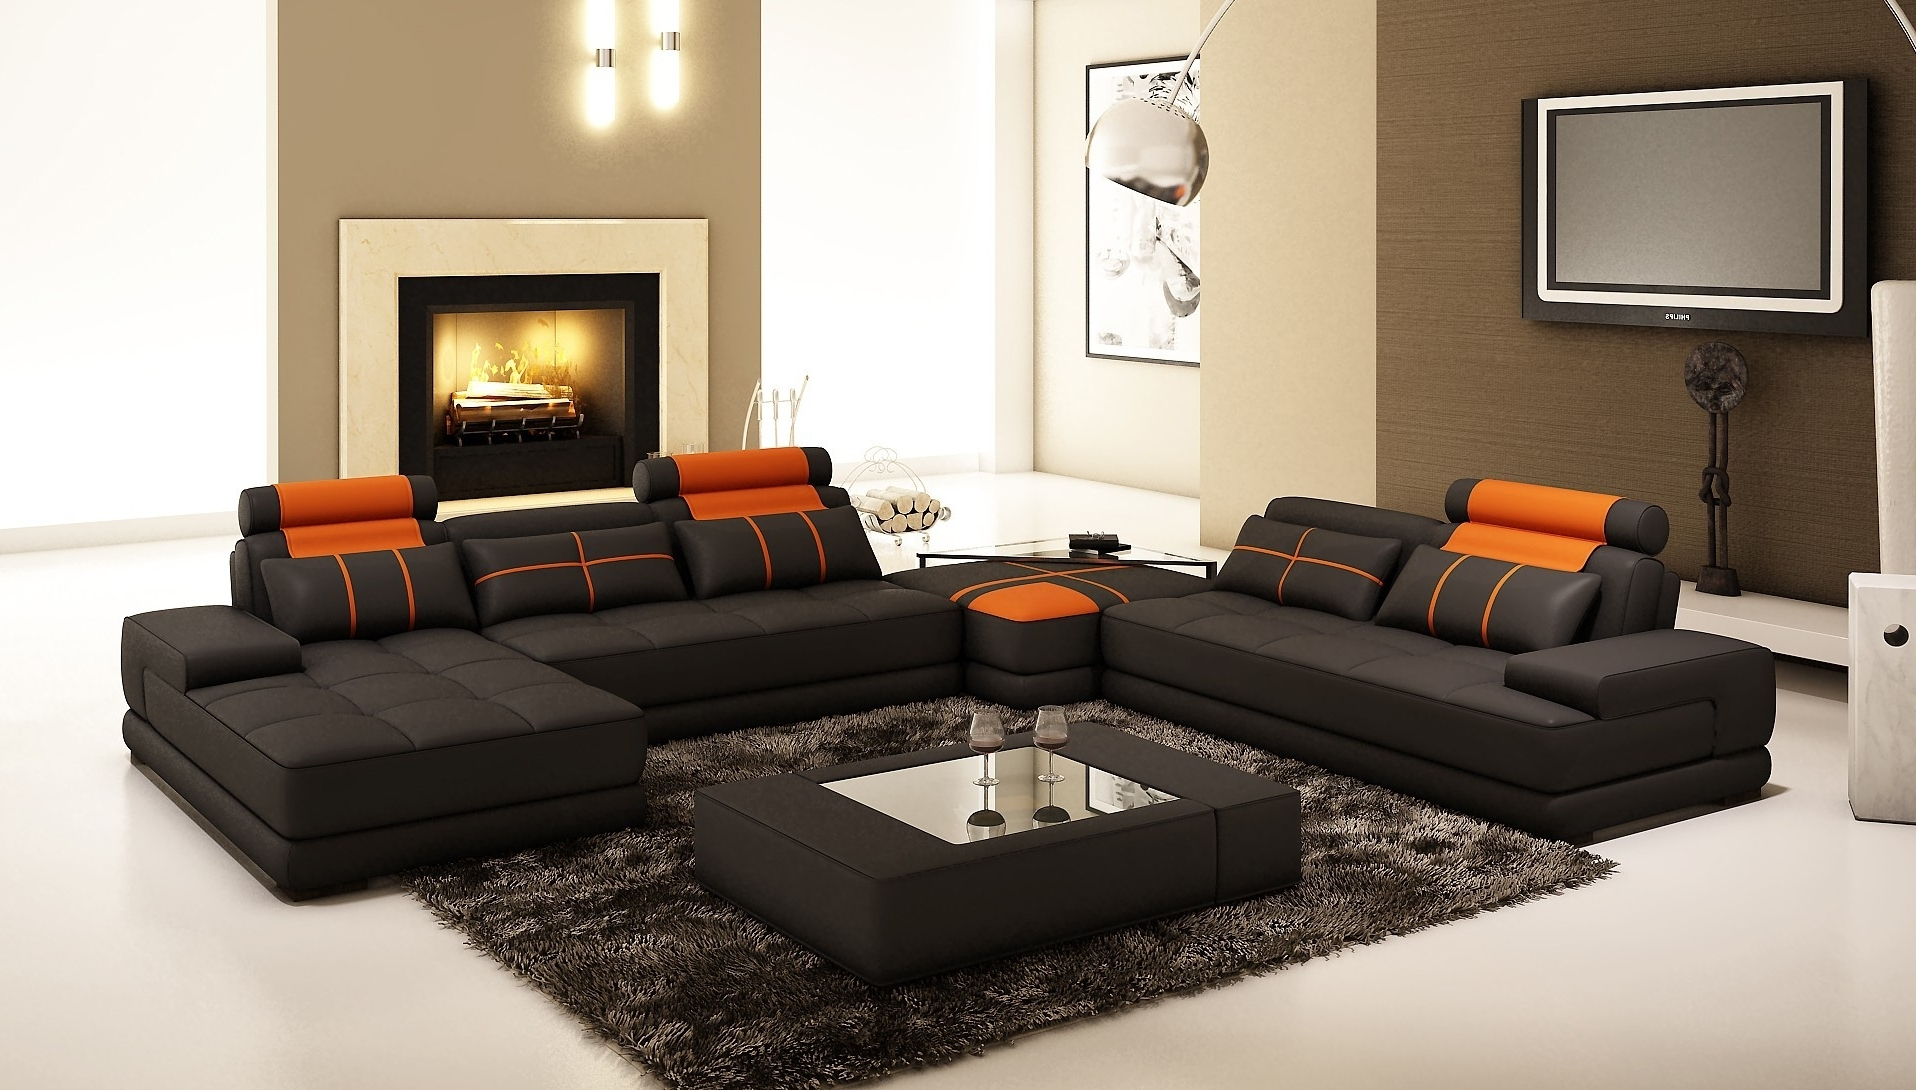 Well Known Furniture : Sectional Sofa 102 X 102 Corner Couch Black Recliner Pertaining To 102X102 Sectional Sofas (View 8 of 15)